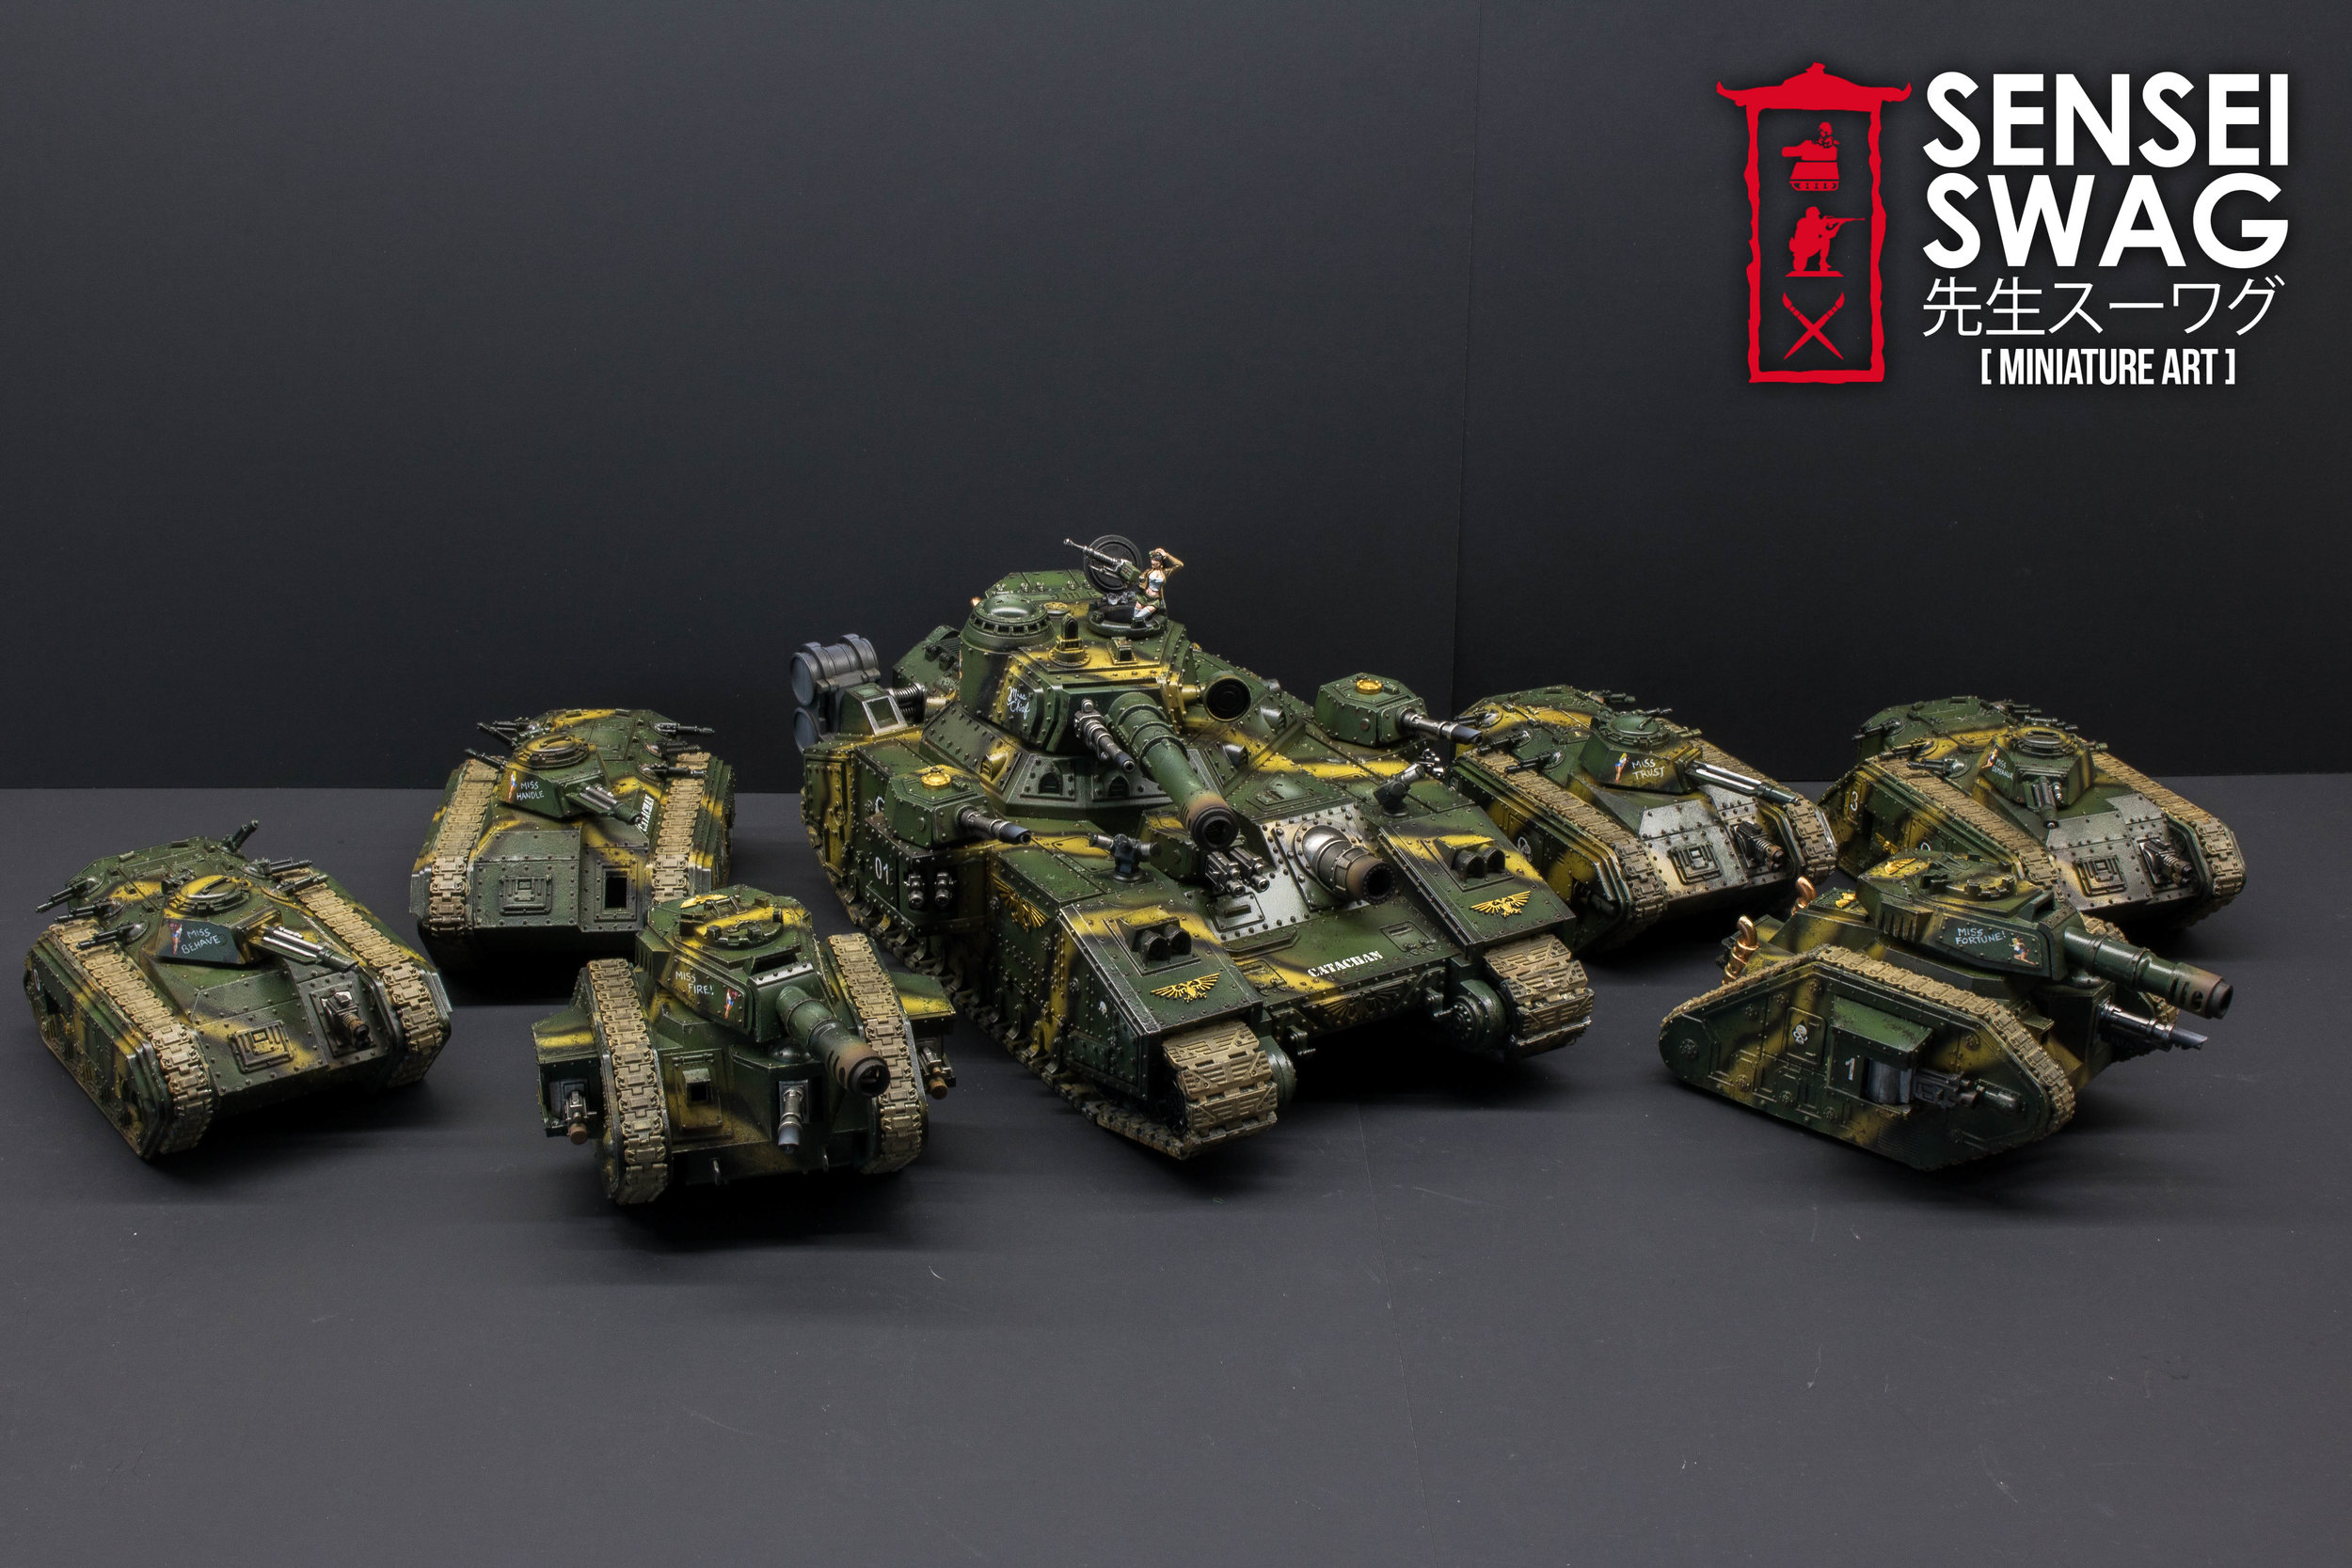 Catachan Jungle Fights Armored Baneblade Leman Russ Jungle Camo Imperial Guard-1.jpg